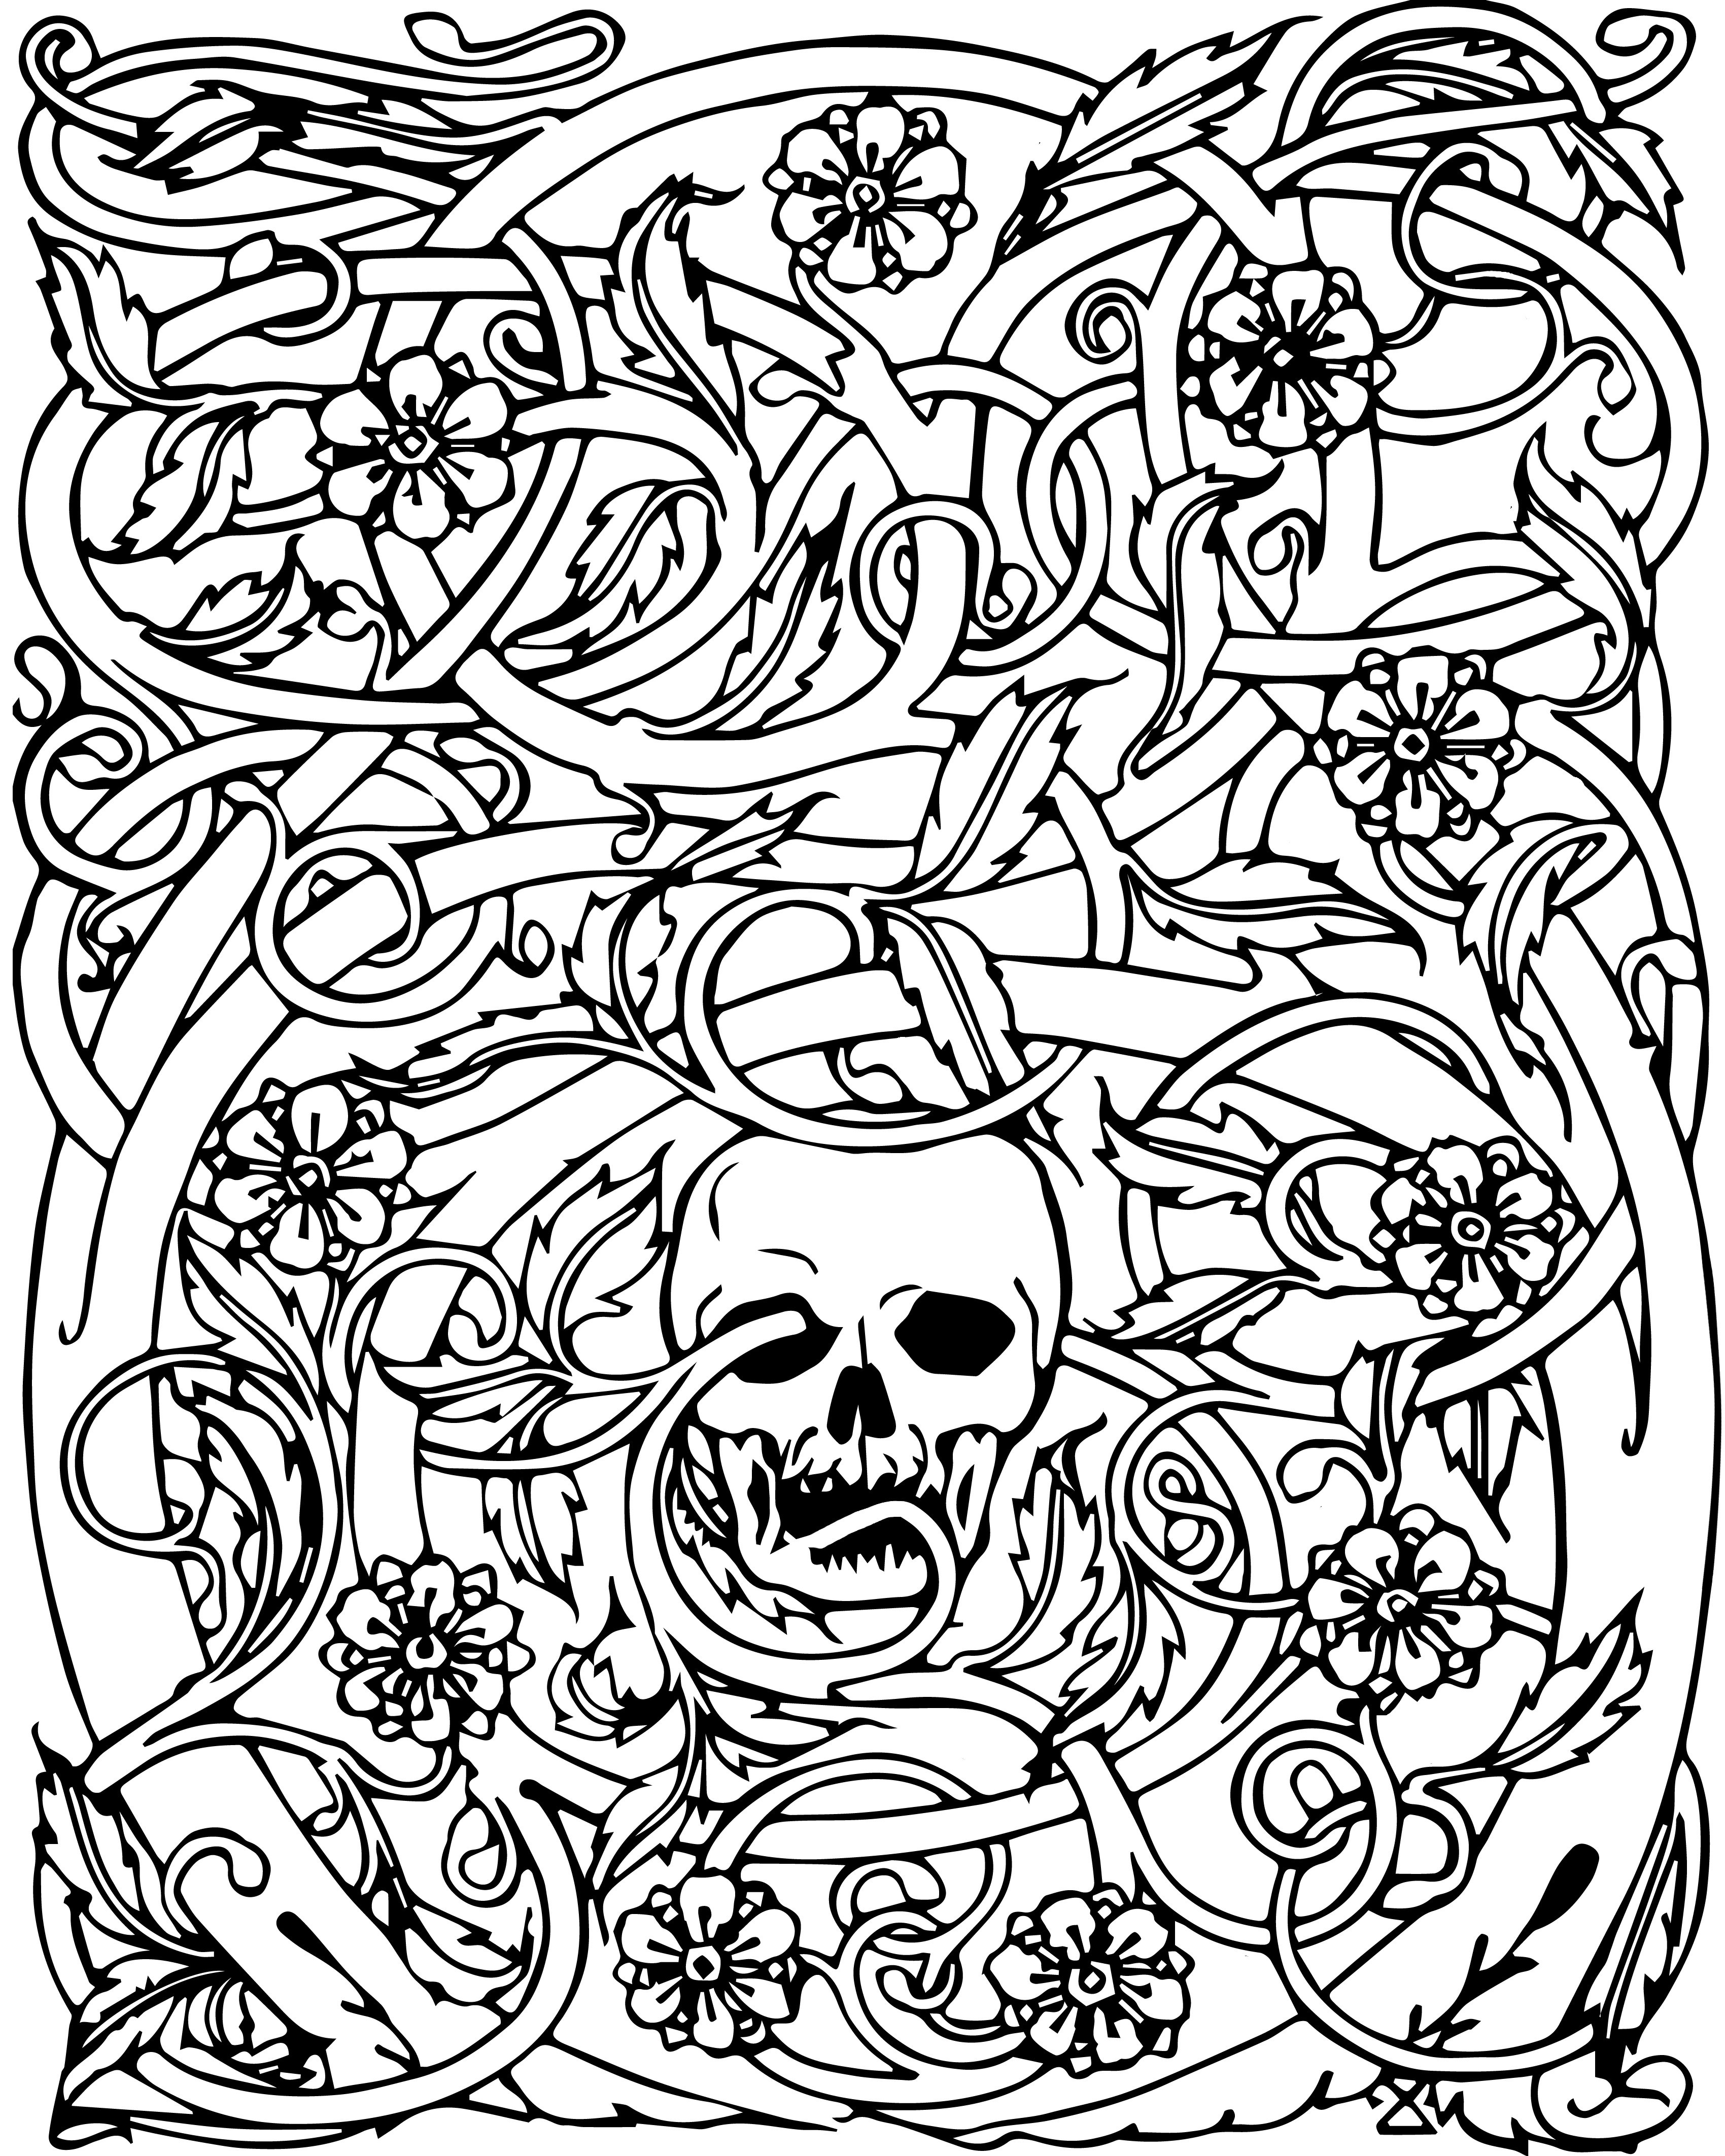 Skull Printable Coloring Pages  Collection 6i - Free For kids